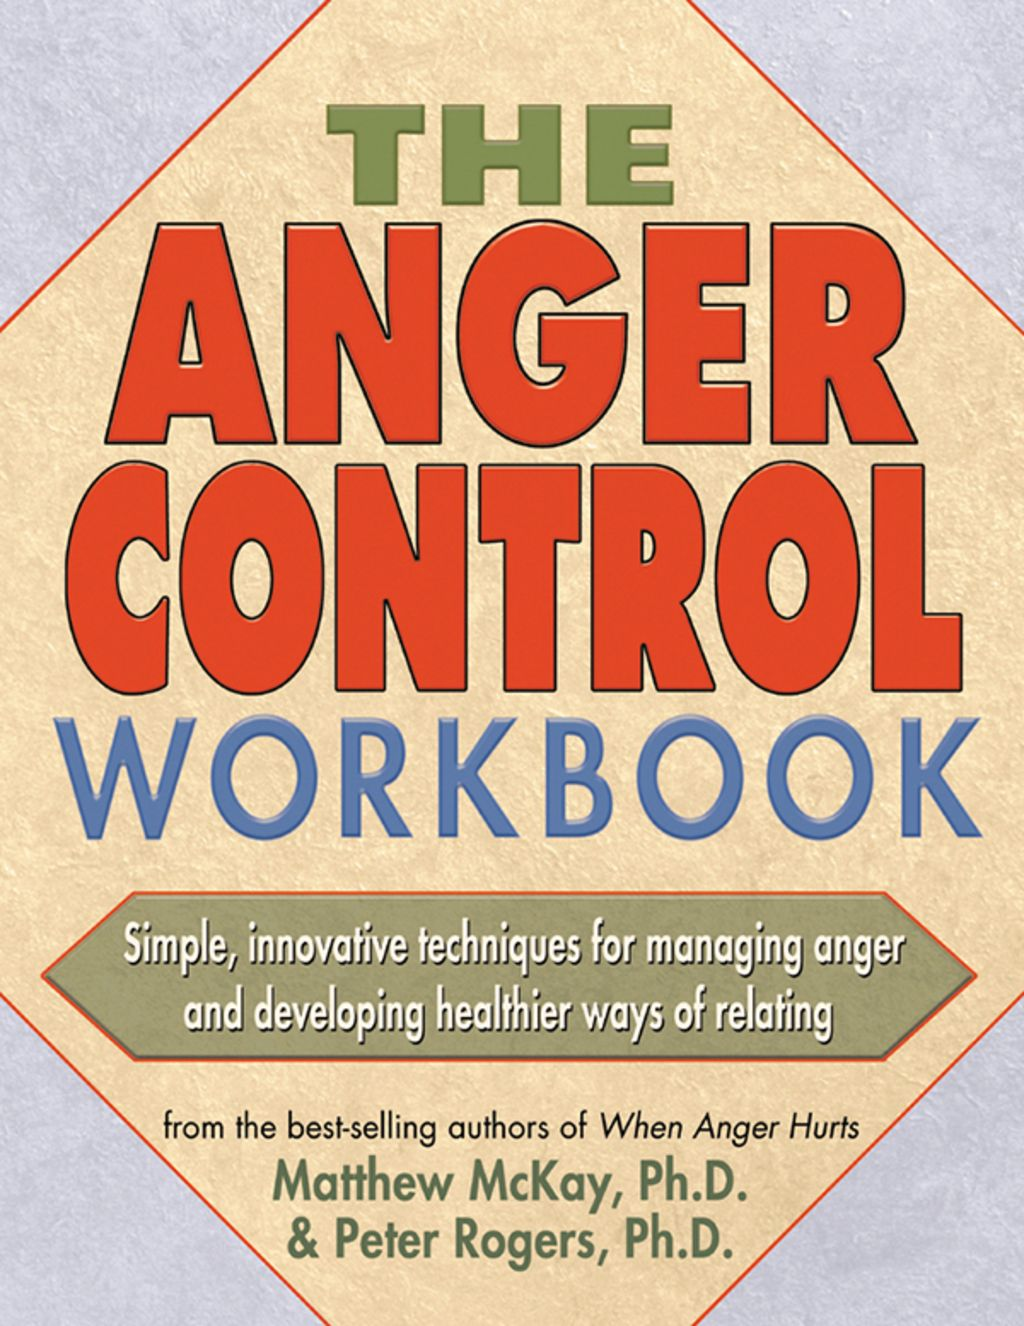 The Anger Control Workbook Ebook In